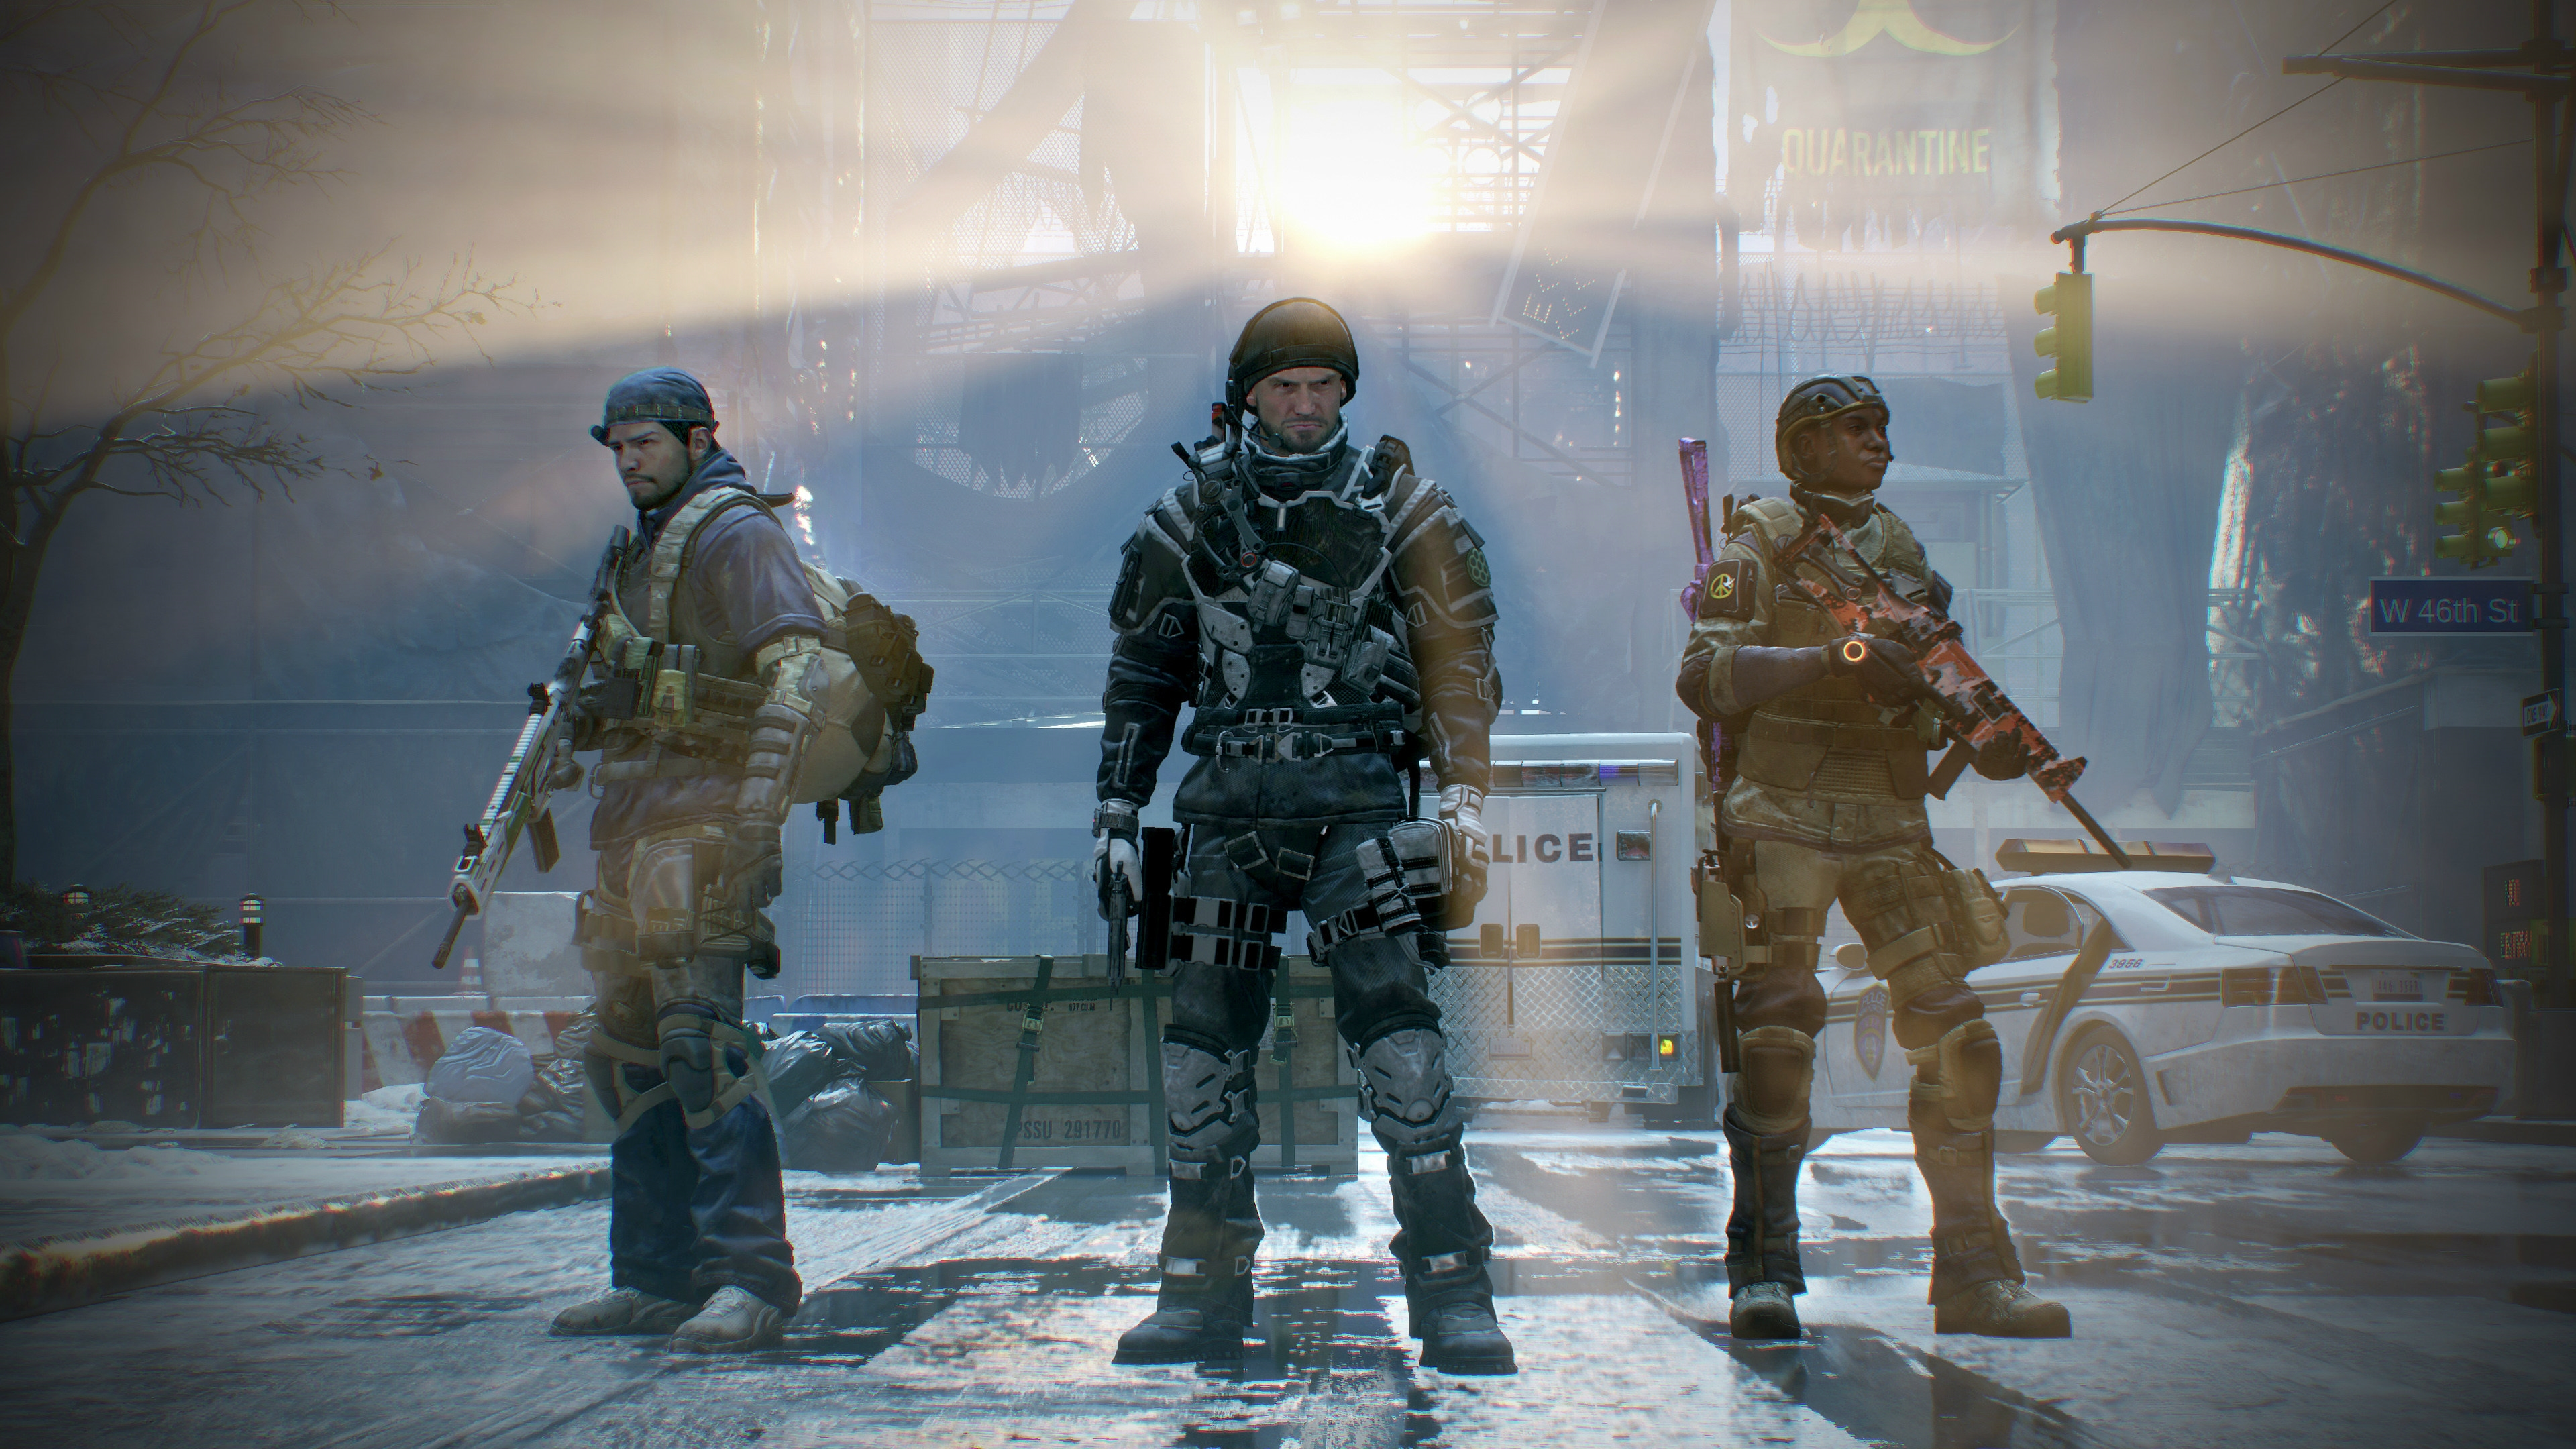 The Division Update 1.7 Brings Global Events and New Loot on August 15 | DeviceDaily.com